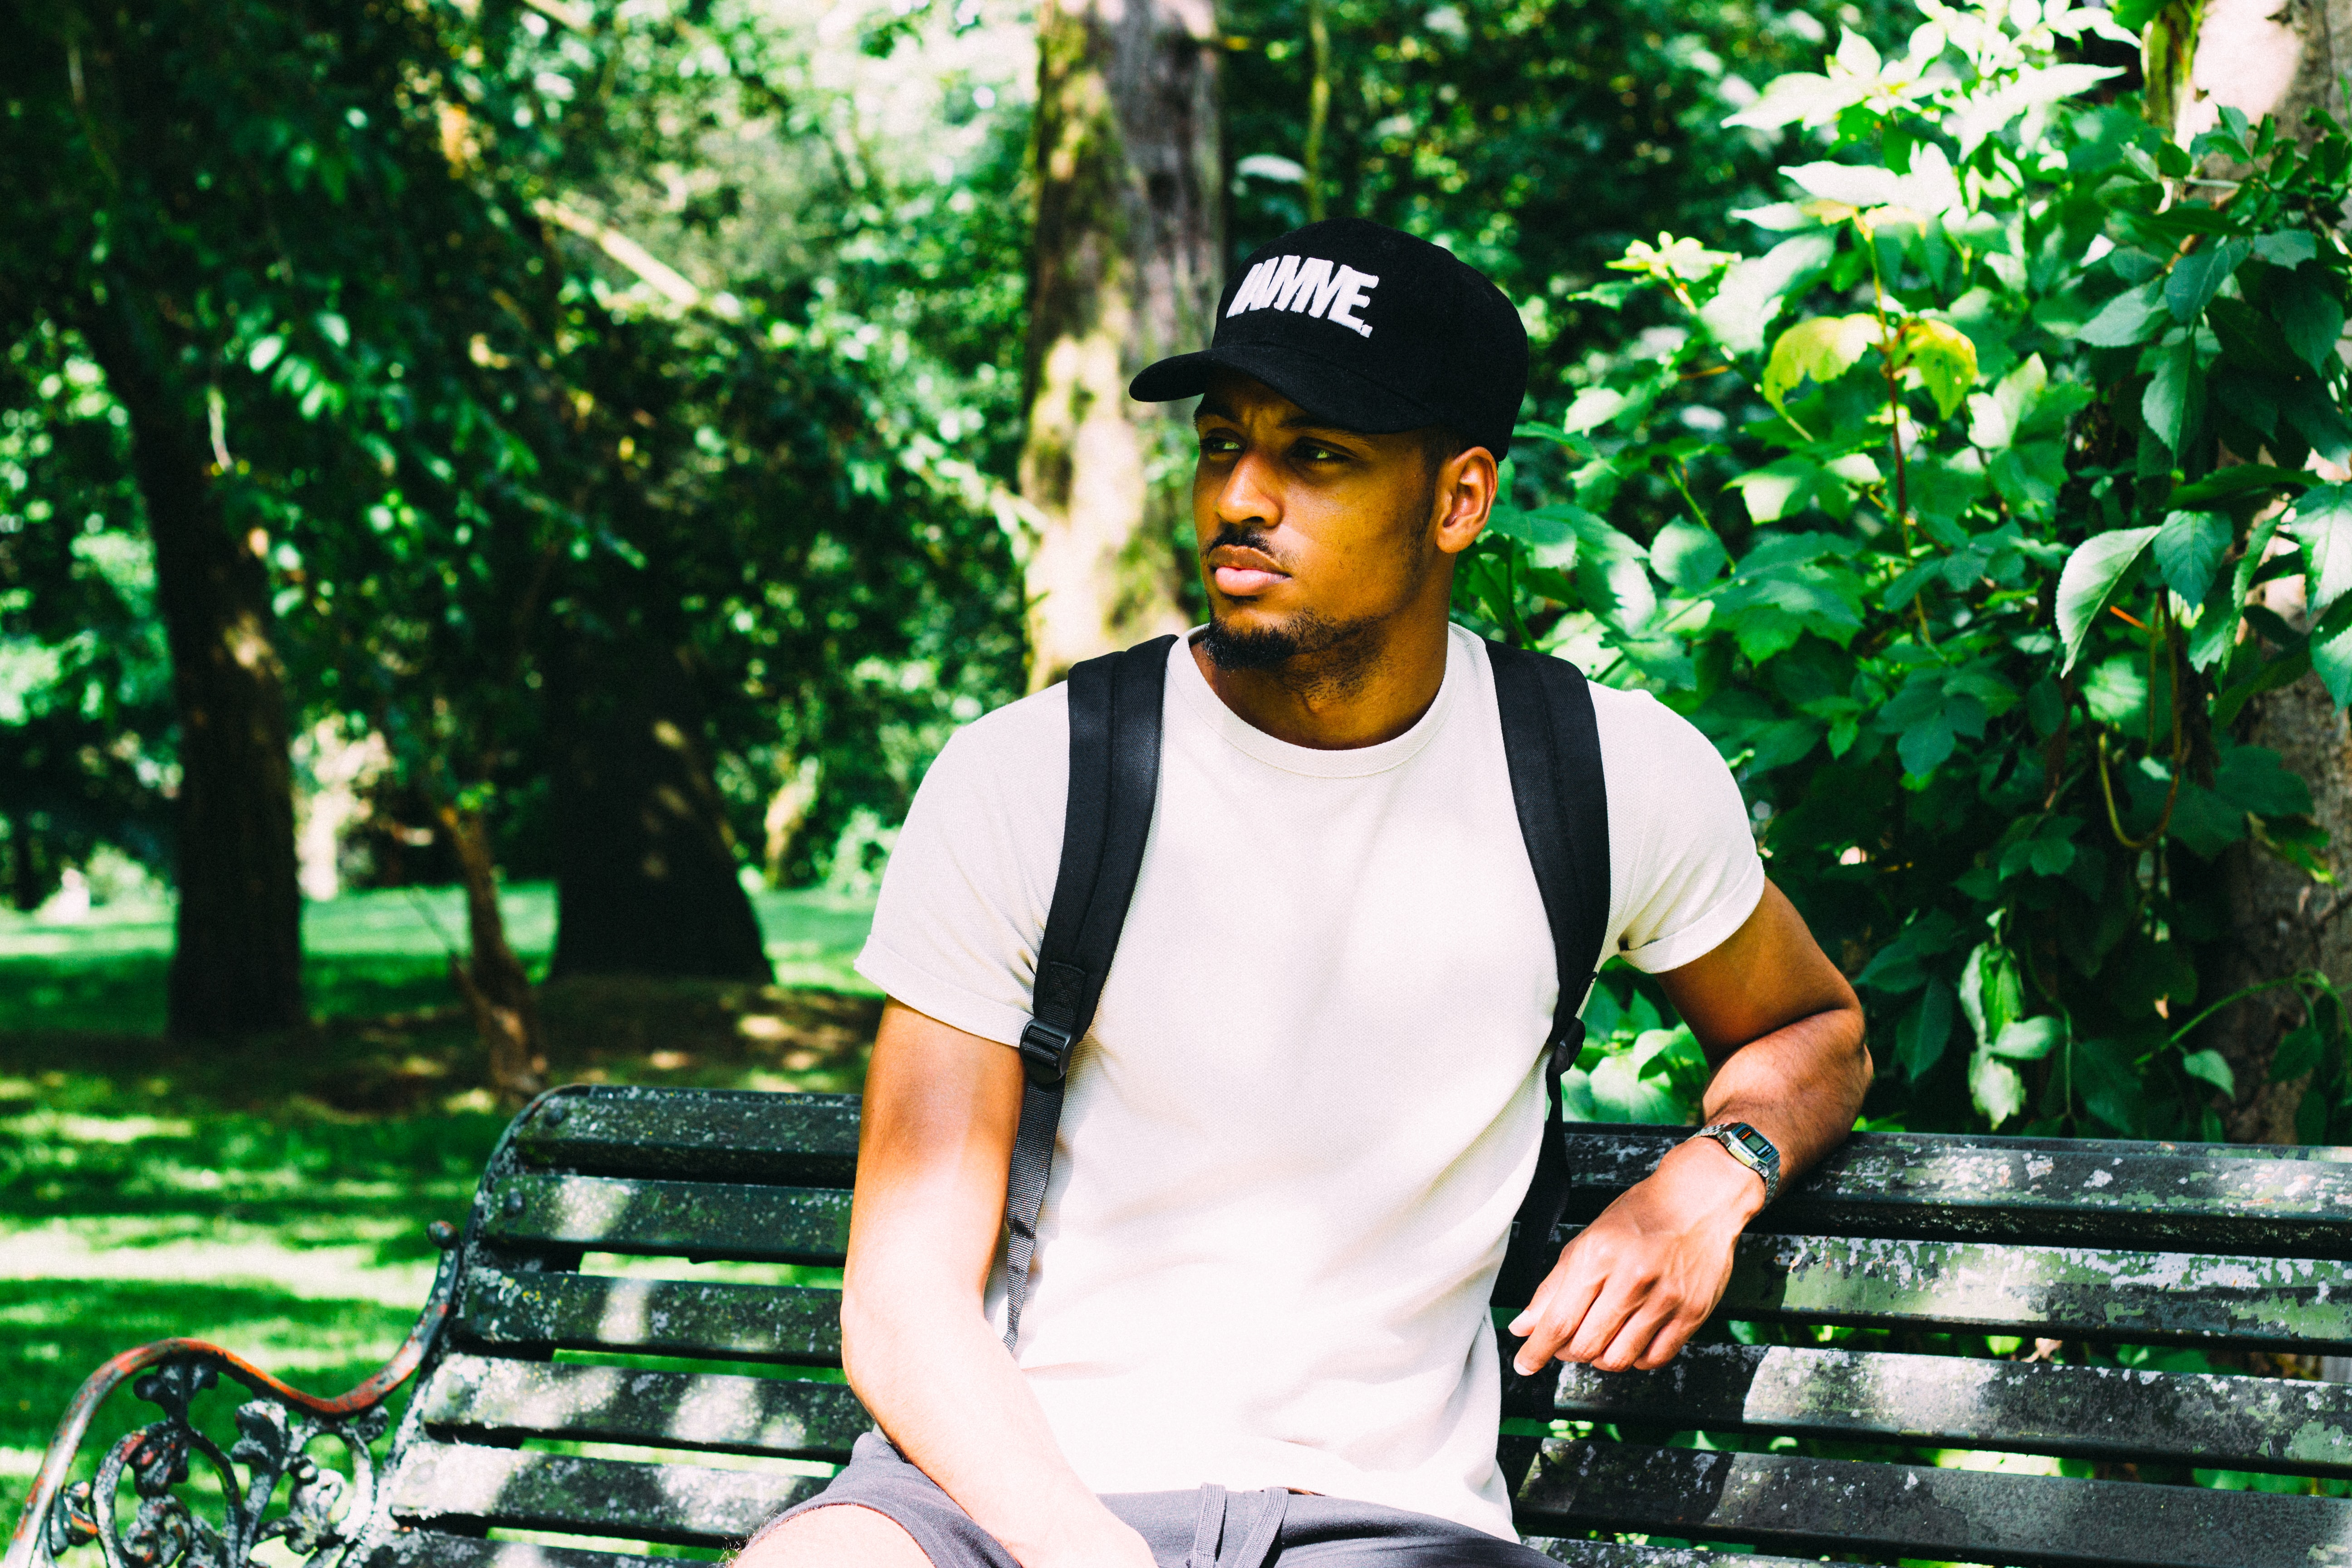 Trendy man in a hat and backpack sits alone in a park bench